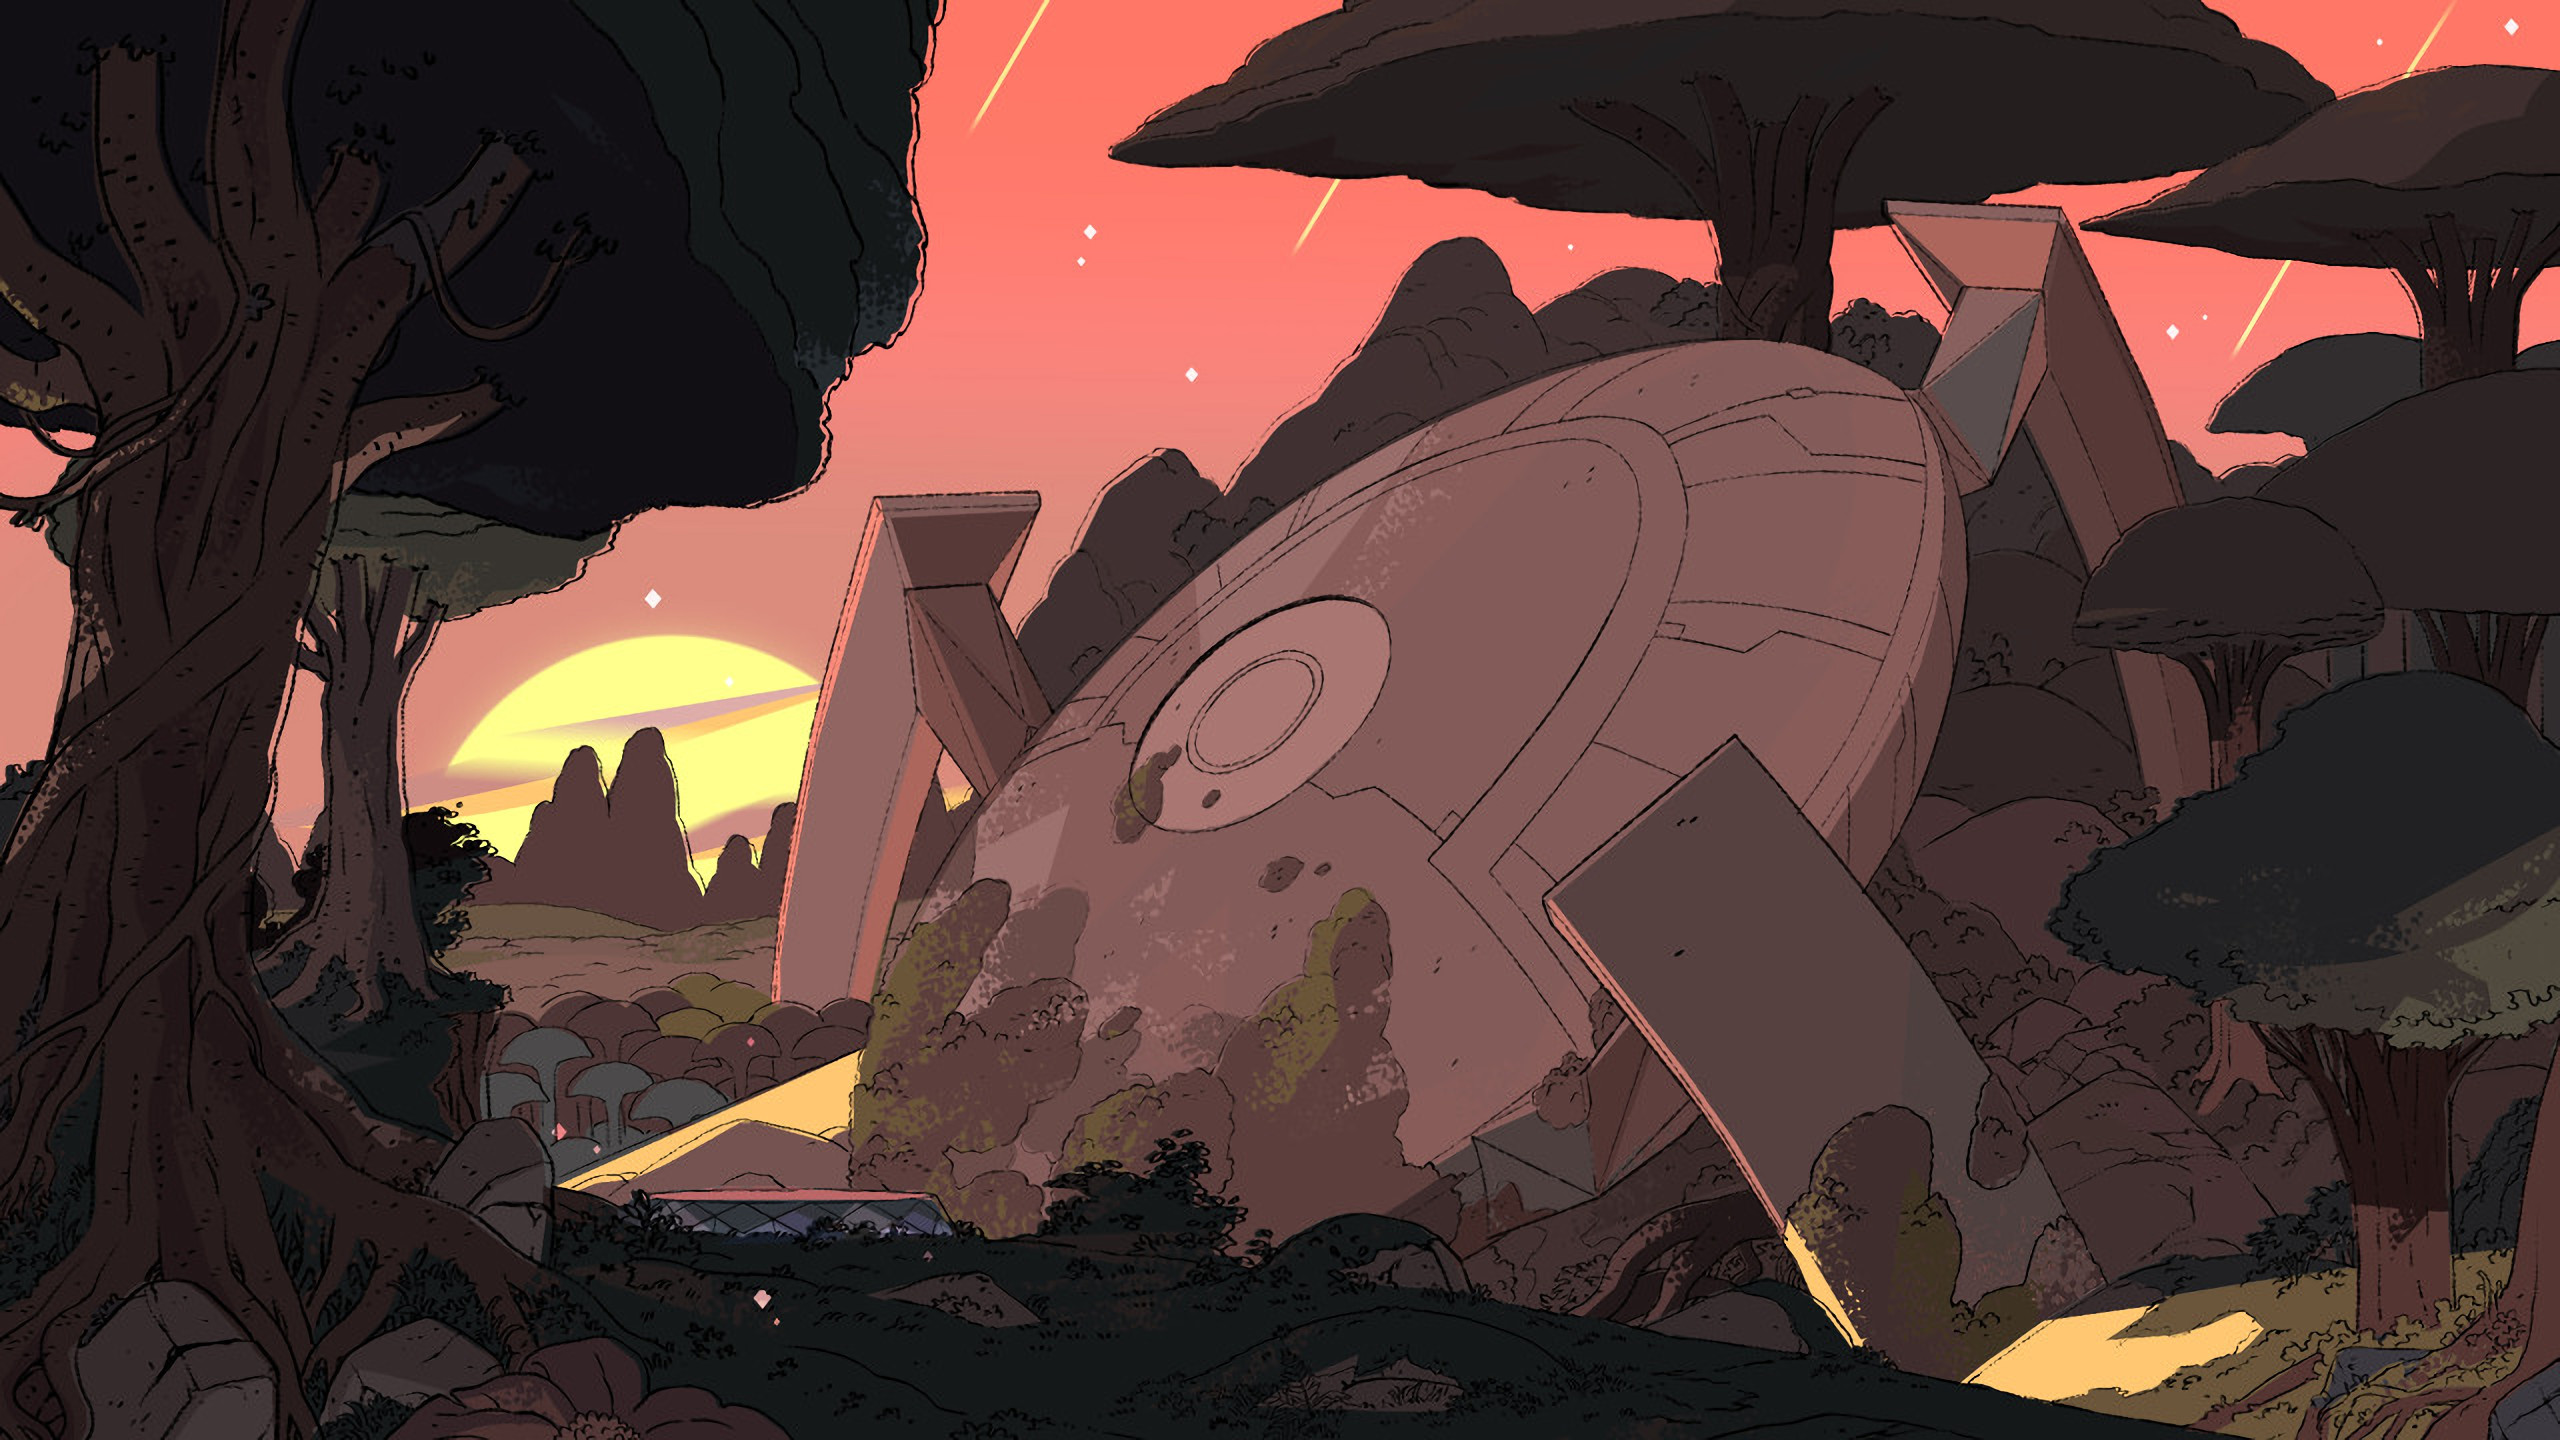 Download Wallpaper High Quality Steven Universe - 91703  Best Photo Reference_626863.jpg